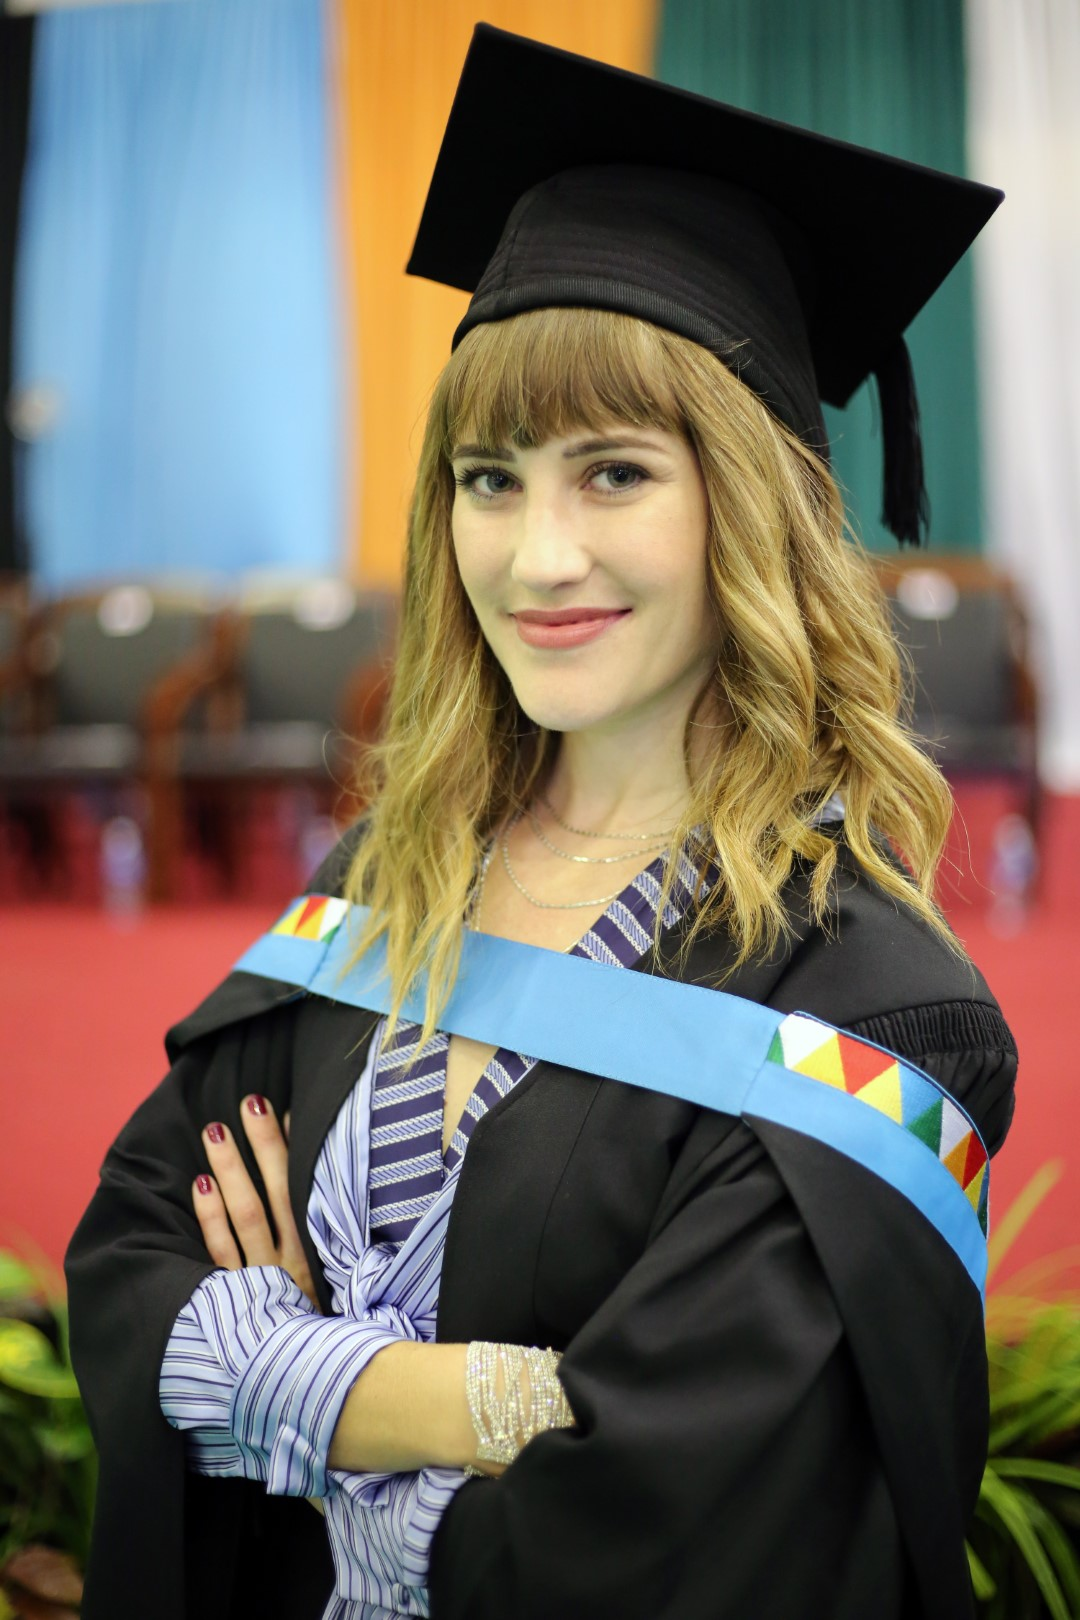 Ms Nicolette Carboni was awarded her Masters in Education summa cum laude.